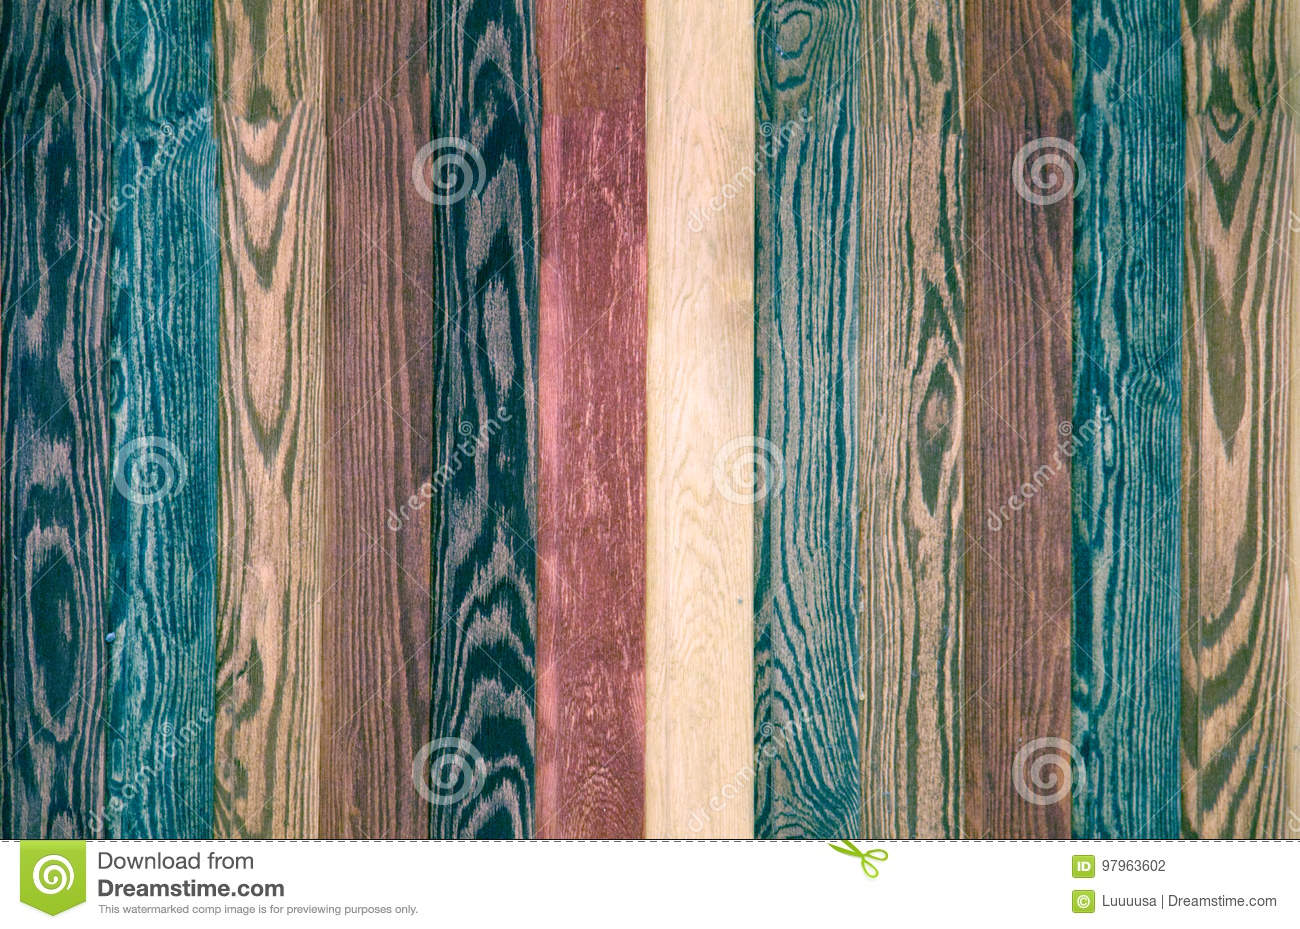 Download Colorful Wood Background Planks Seamless Dark Blue Texture Floor Stock Photo